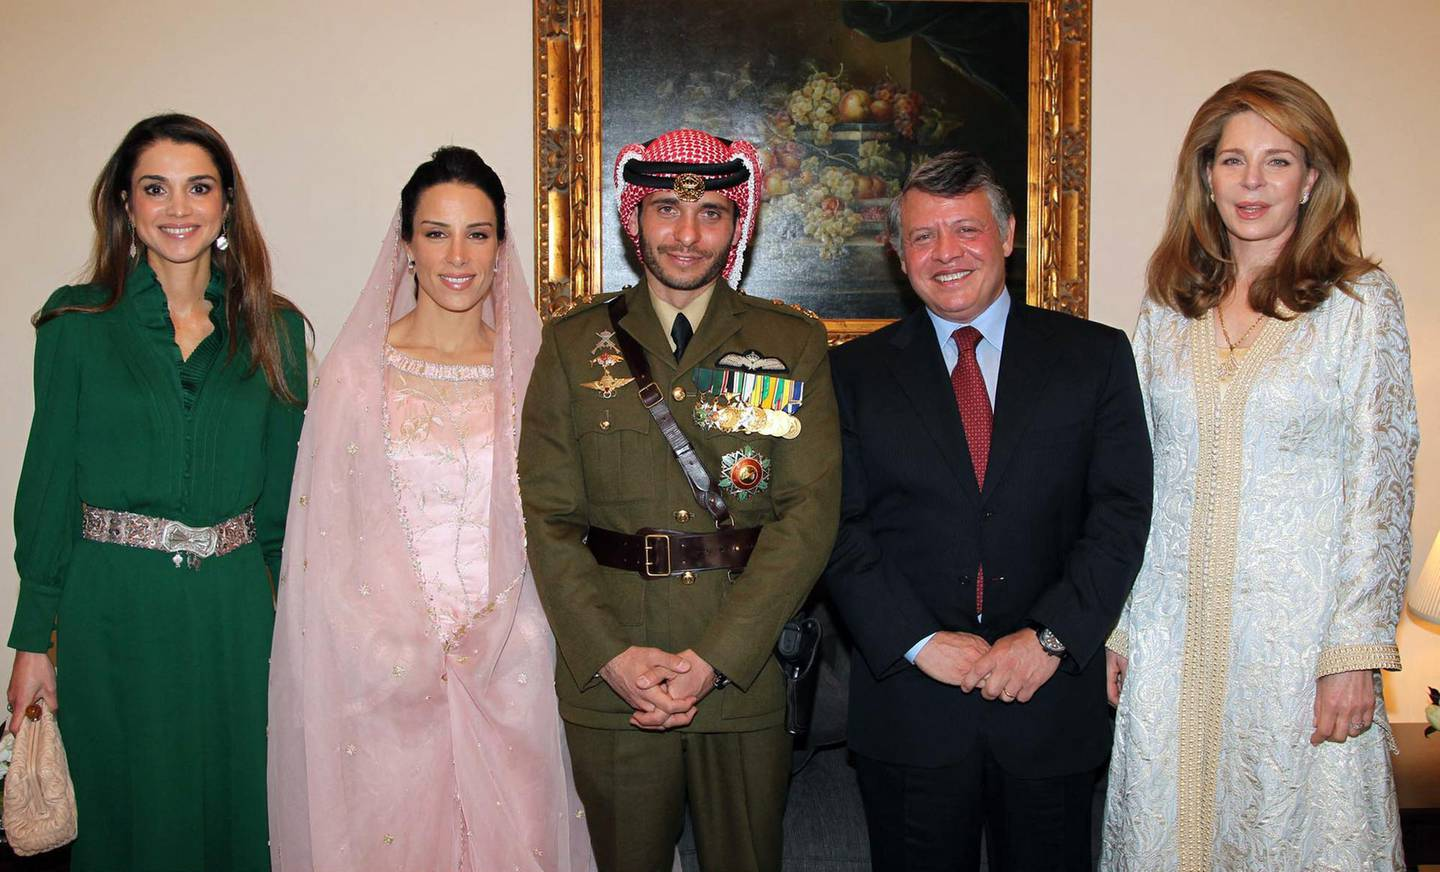 (FILES) In this file handout picture released by the Jordanian news agency Petra on January 12, 2012, shows Jordan's King Abdullah (2nd R), Queen Noor, widow of late King Hussein (R), and Queen Rania (L) posing for a picture with Prince Hamza, half-brother of Jordan's King Abdullah and his new wife Princess Basma Otoum during their  Muslim wedding ceremony at the Royal Palace in Amman . Prince Hamzah bin Hussein, a half-brother of King Abdullah II, has been asked to stop activities that could undermine Jordan's security, the army said April 3, 2021. The Joint Chiefs of Staff head, Major General Yousef Huneiti, also denied media reports that Hamza, a former crown prince, had been arrested.  / AFP / PETRA / YOUSEF ALLAN